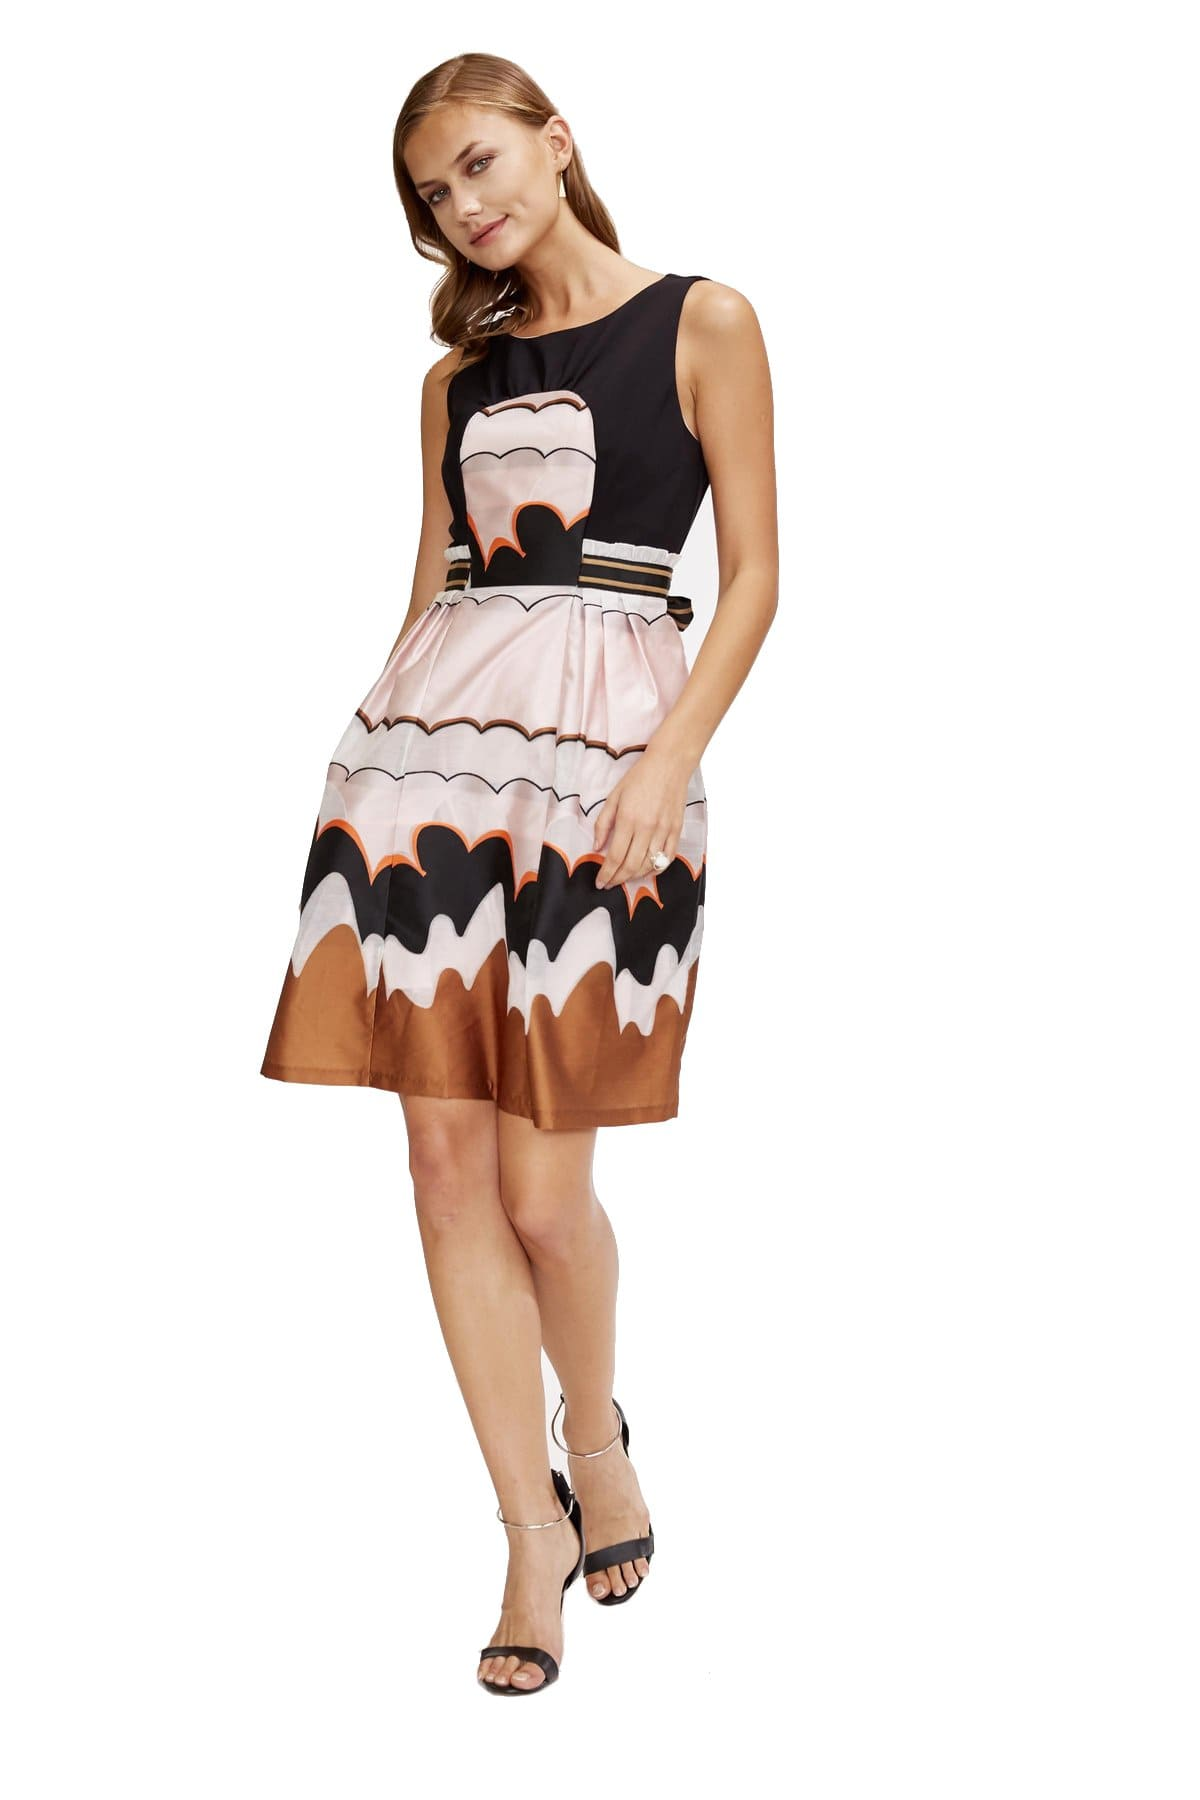 Eva Franco Dress Fondue Dress - Cakemelt